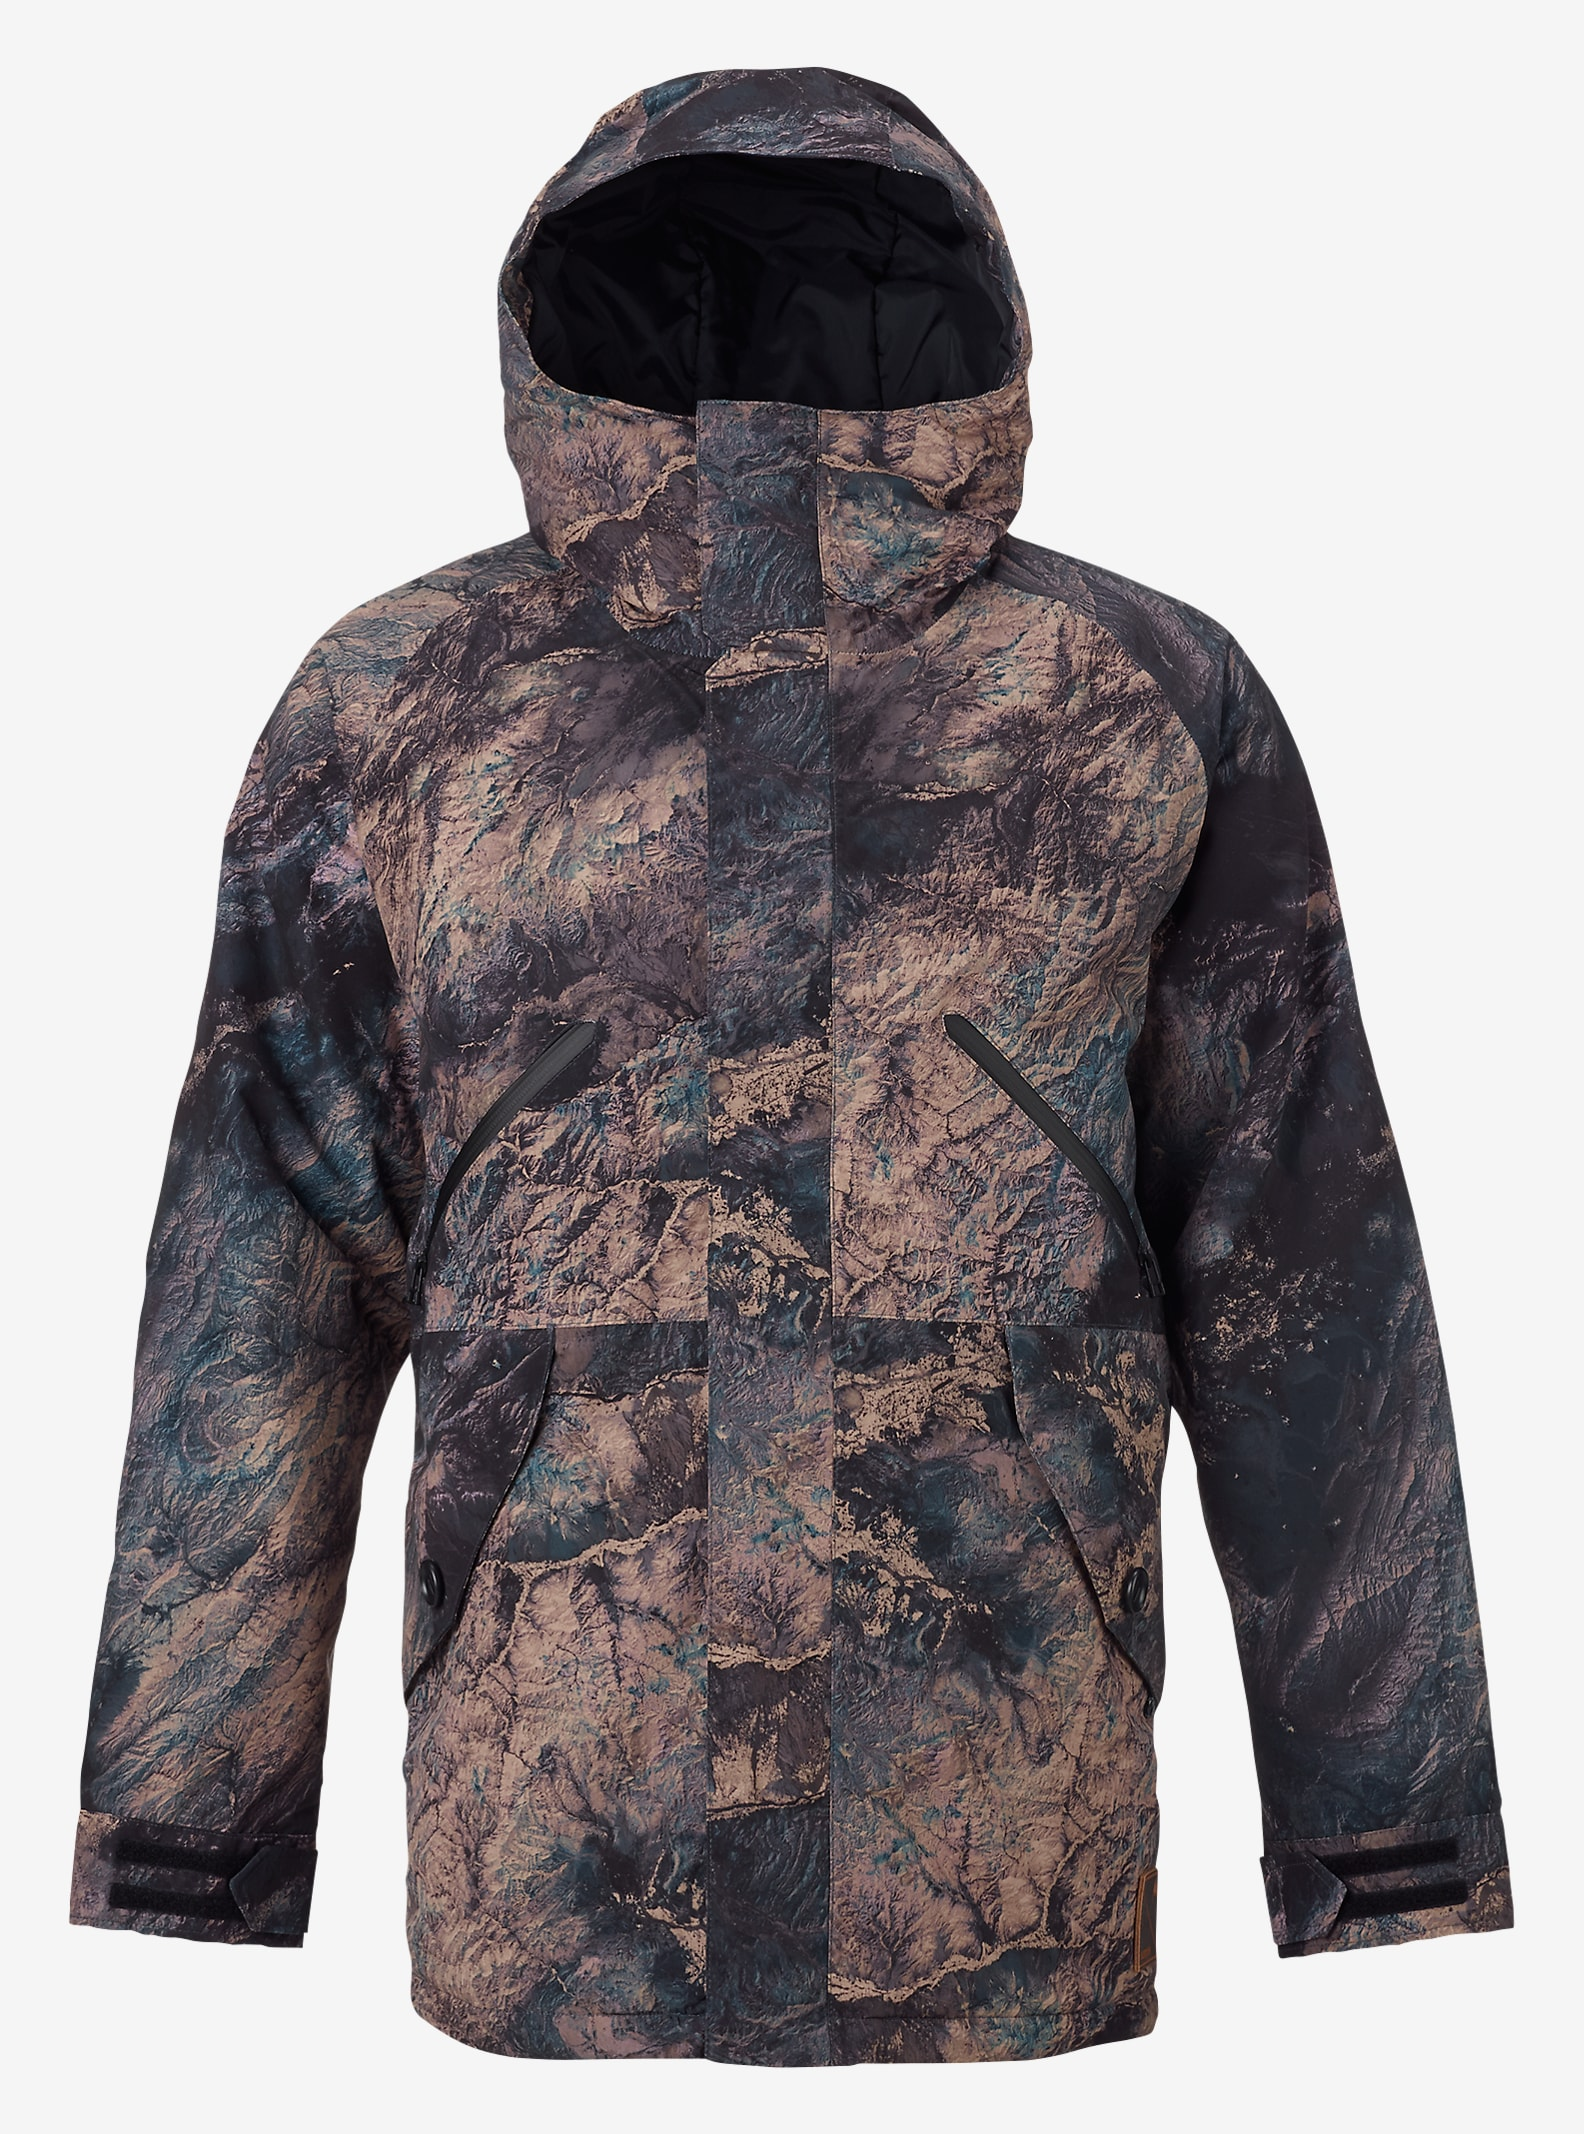 Burton Breach Jacket shown in Earth